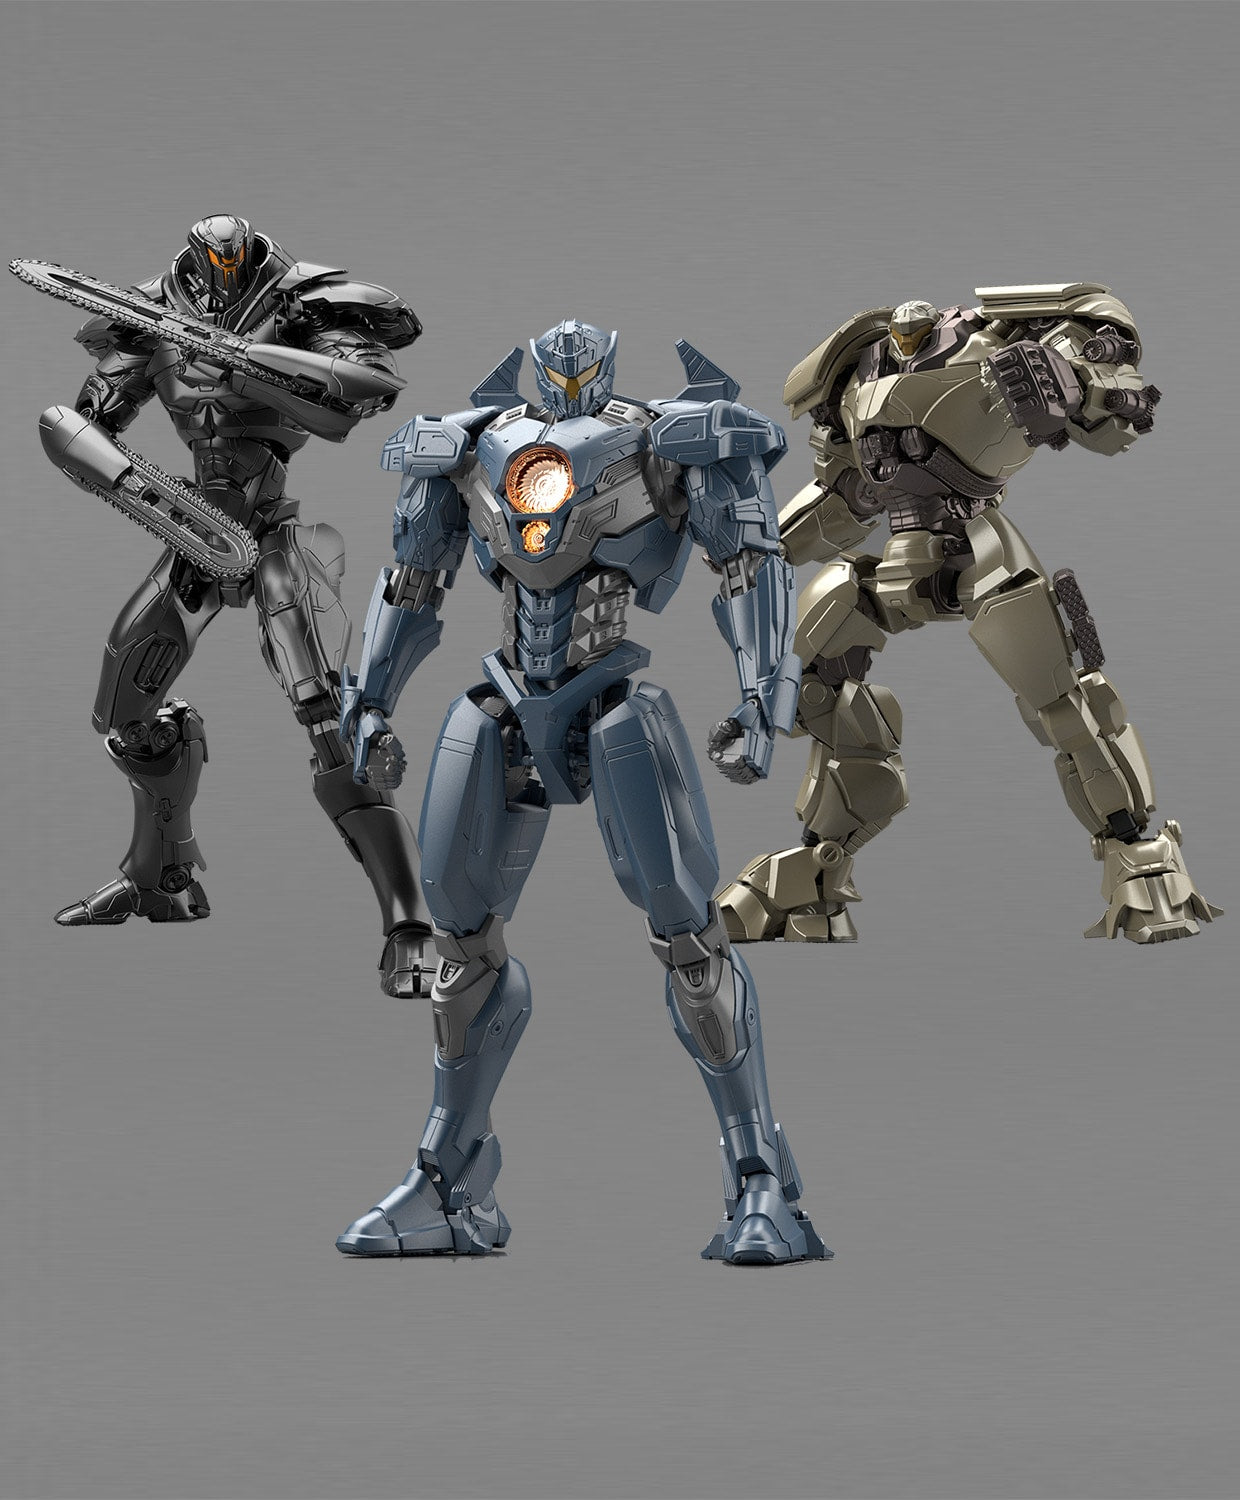 bandai hg jaeger action figure model kits complete set metallic